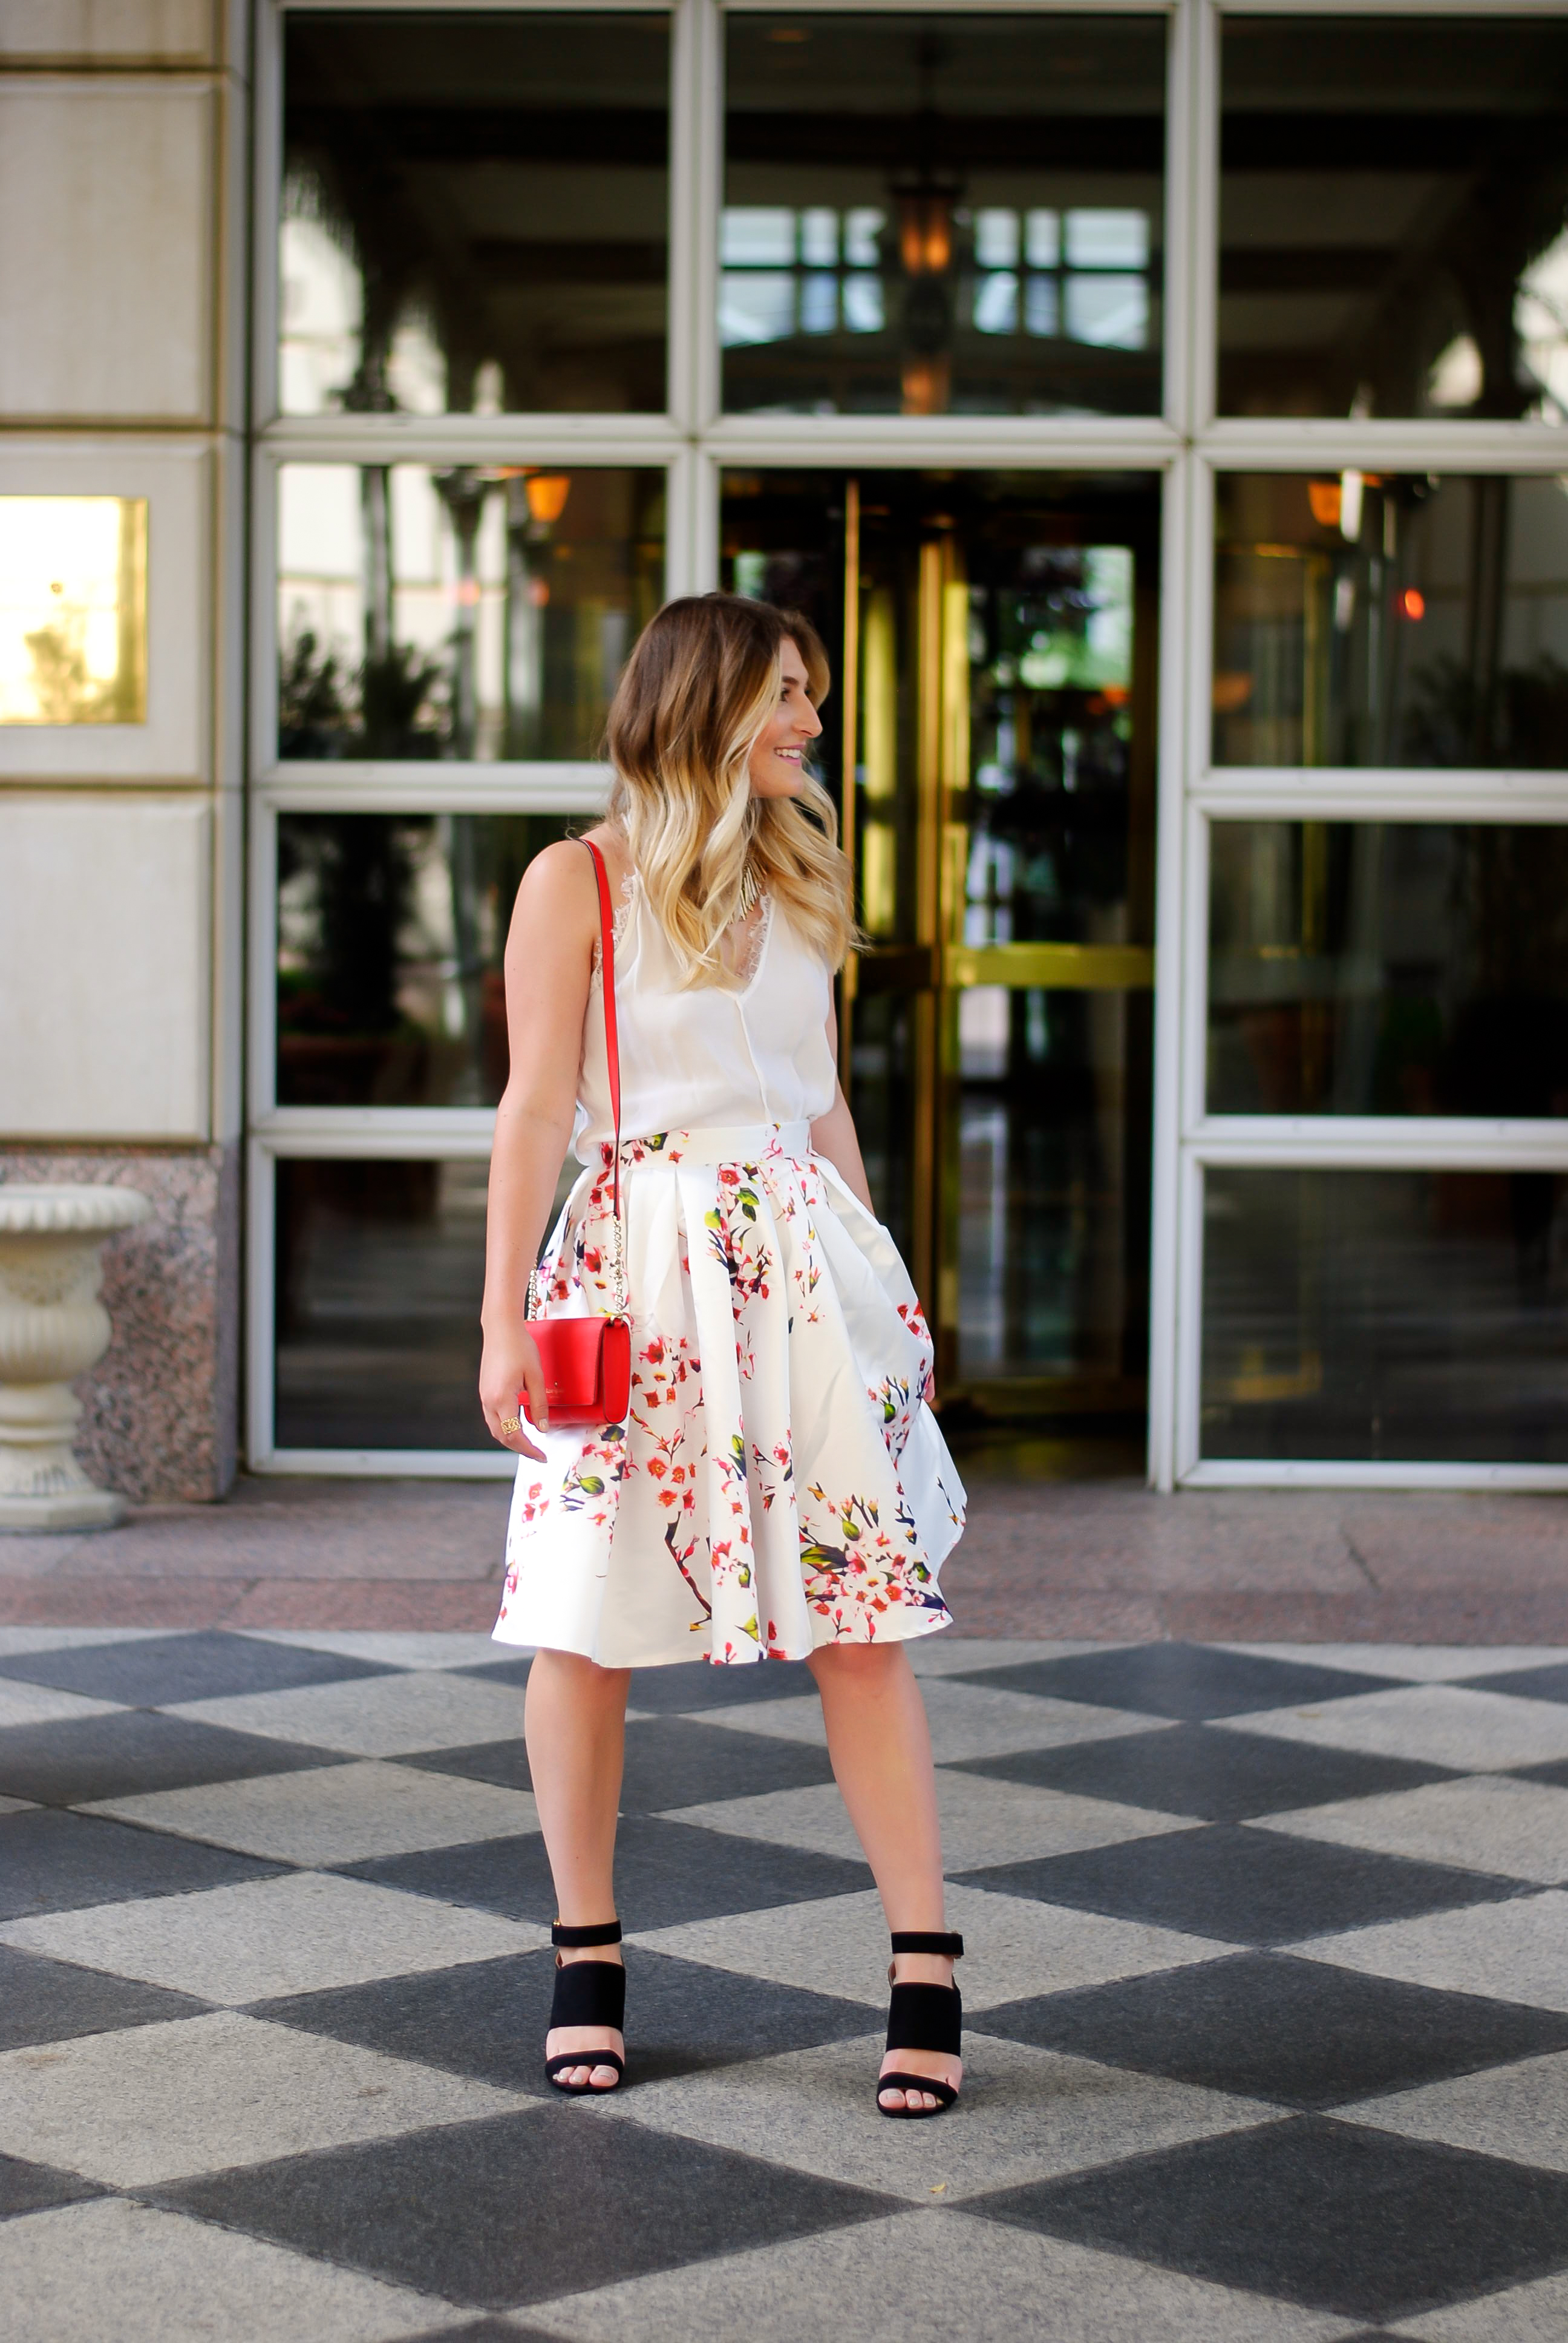 spring/summer floral skirt look | Audrey Madison Stowe Blog